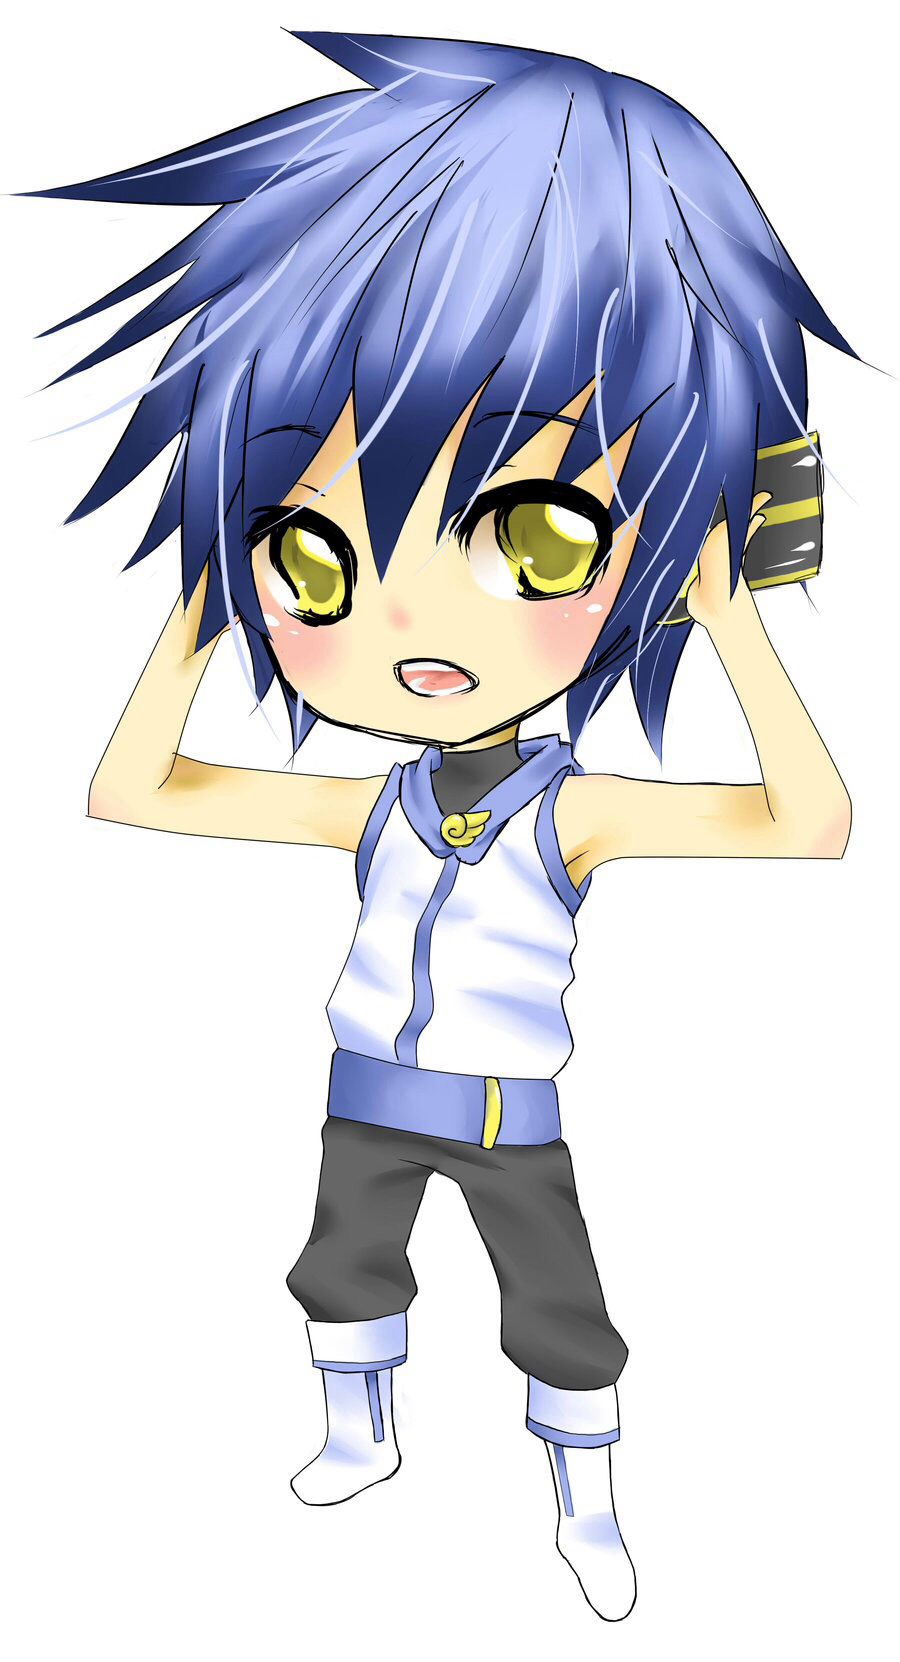 Cute boy with blue hair Anime guys shirtless, Chibi boy